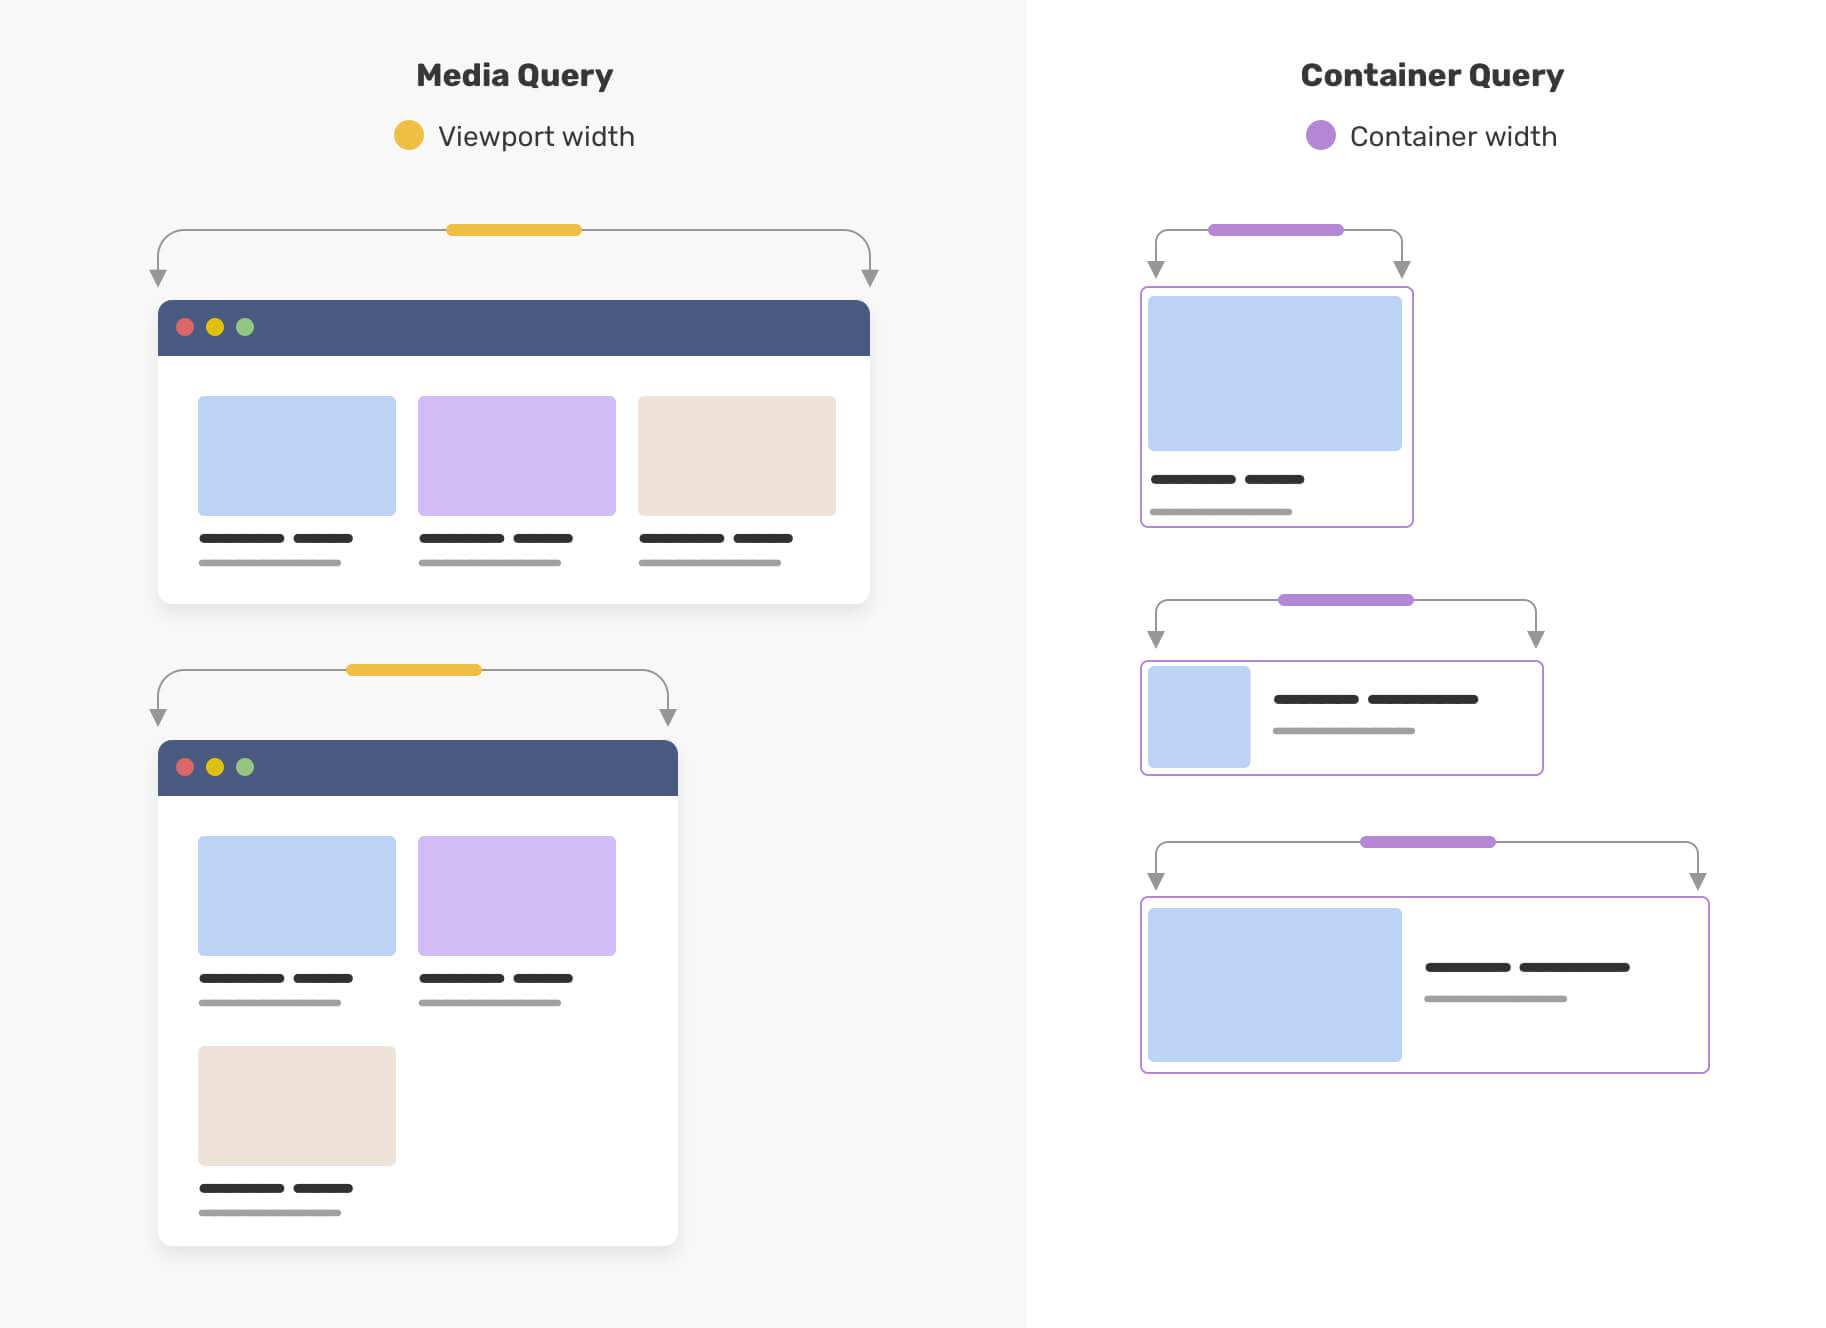 Media Query vs Container Query